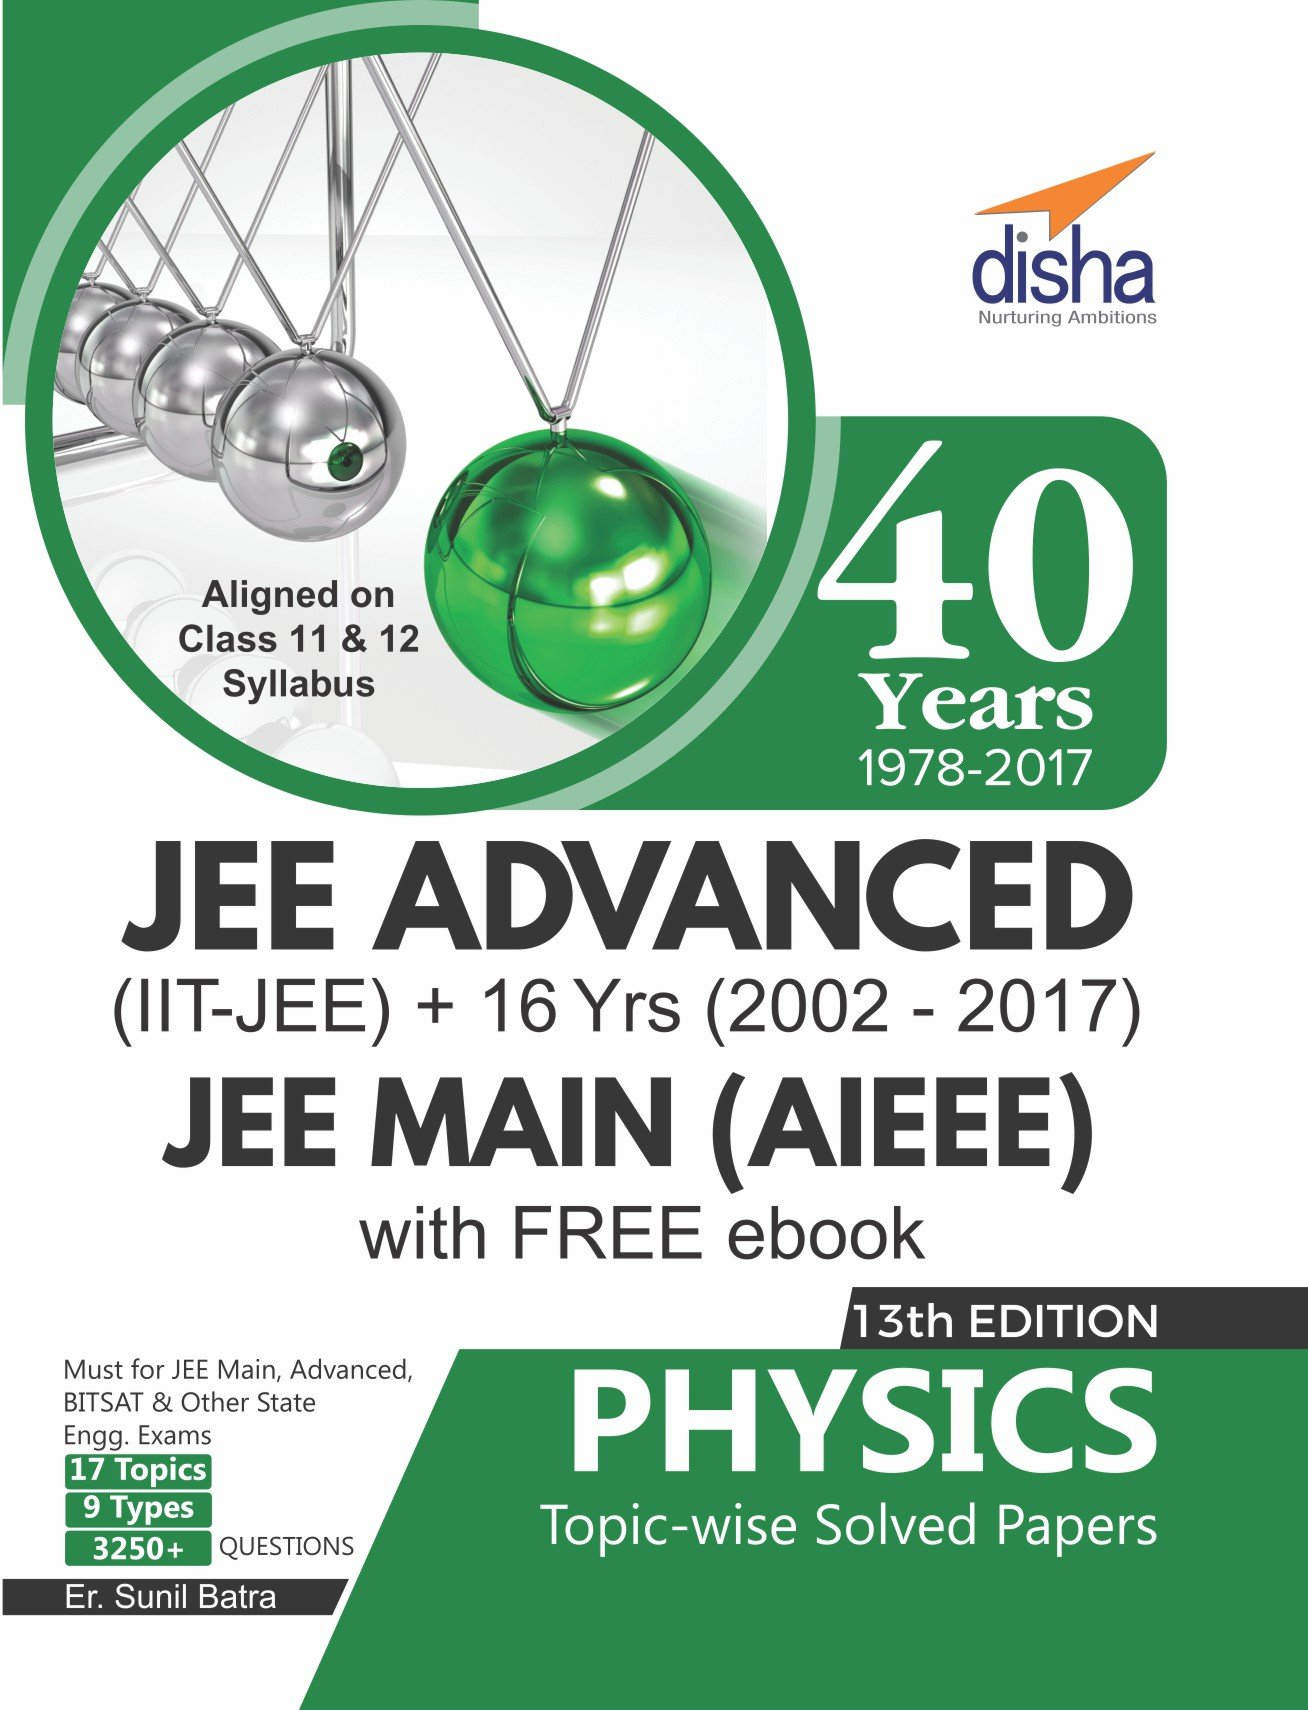 40 Years IIT-JEE Advanced + 16 yrs JEE Main Topic-wise Solved Paper Physics with Free eBook By Sunil Batra